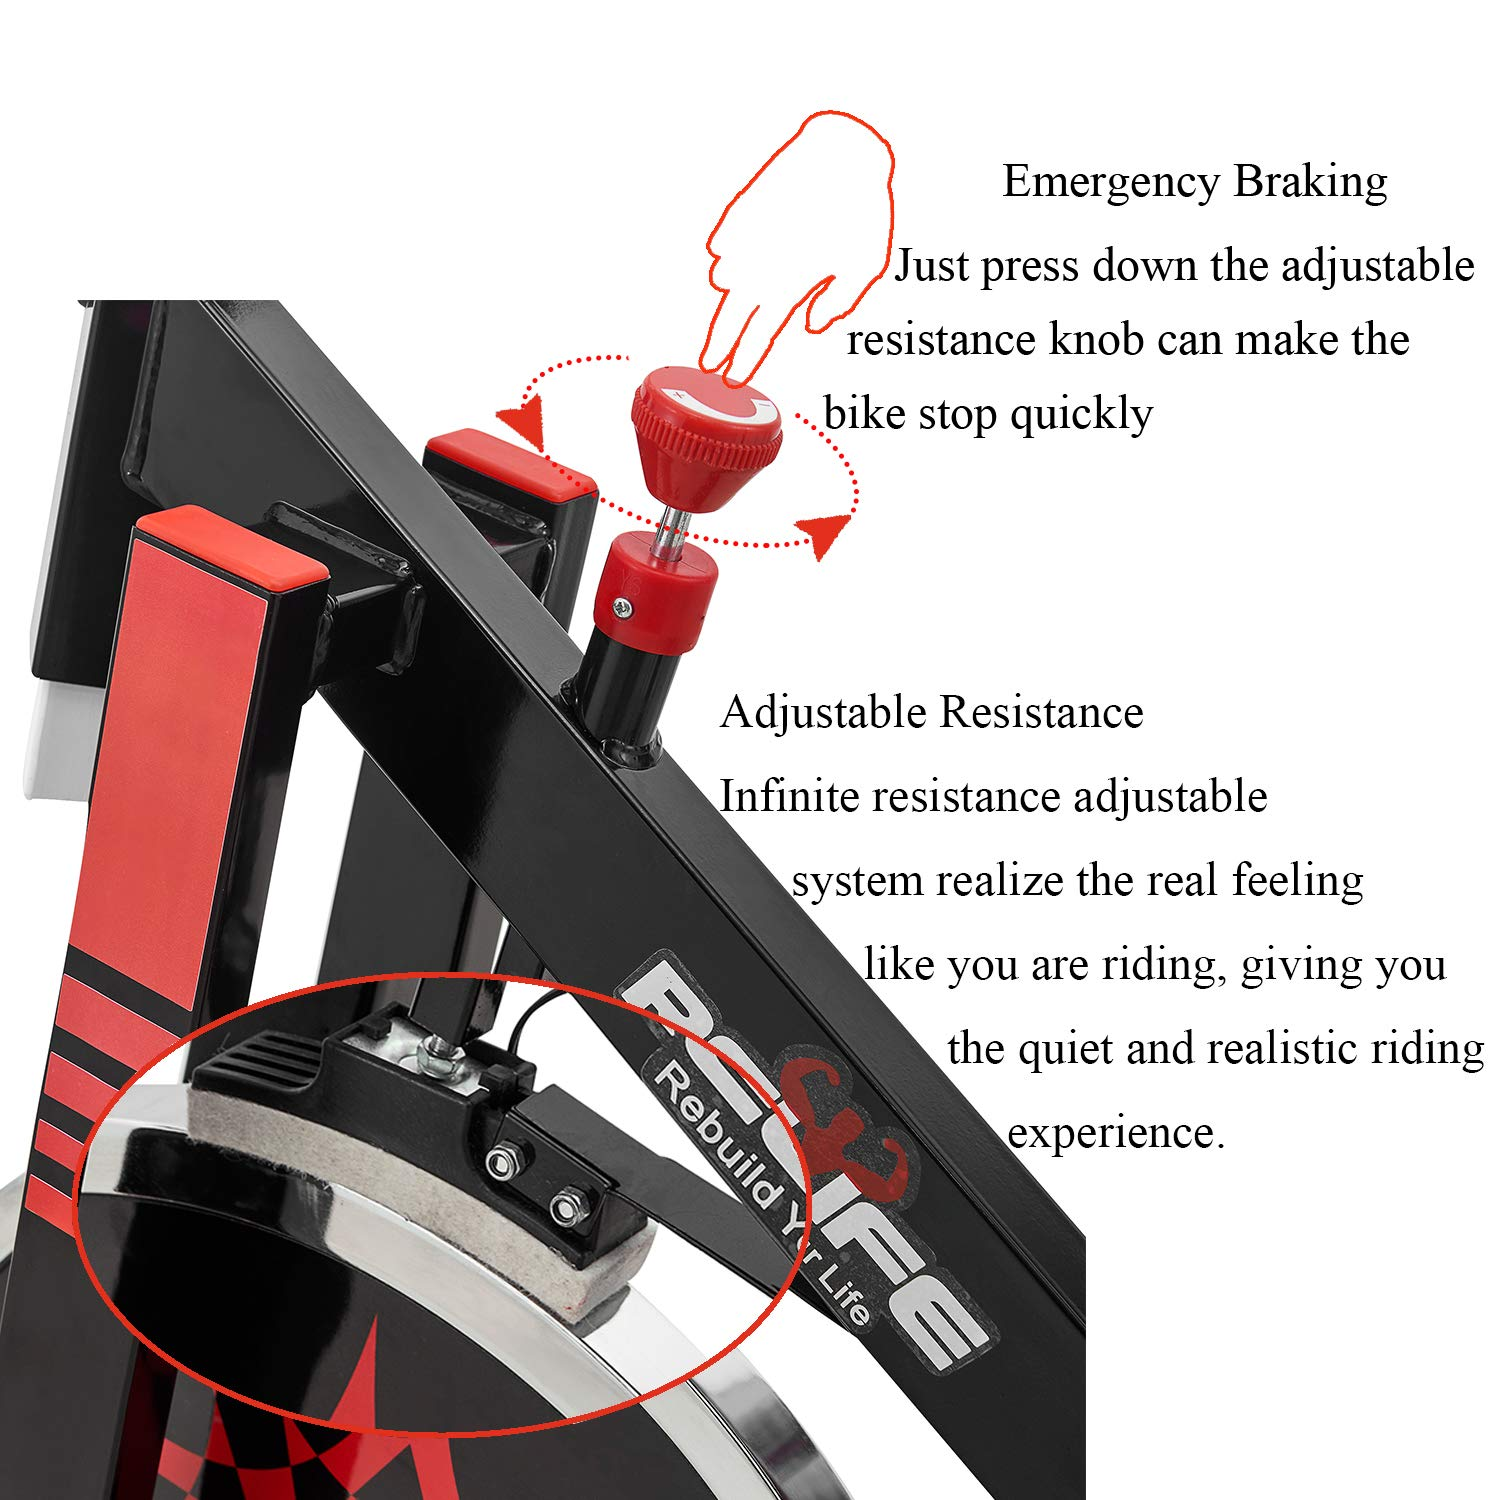 RELIFE REBUILD YOUR LIFE Spin Bike Stationary Indoor Cycling Gym Resistance Workout Home Gym Fitness Machine Exercise Bike by RELIFE REBUILD YOUR LIFE (Image #8)